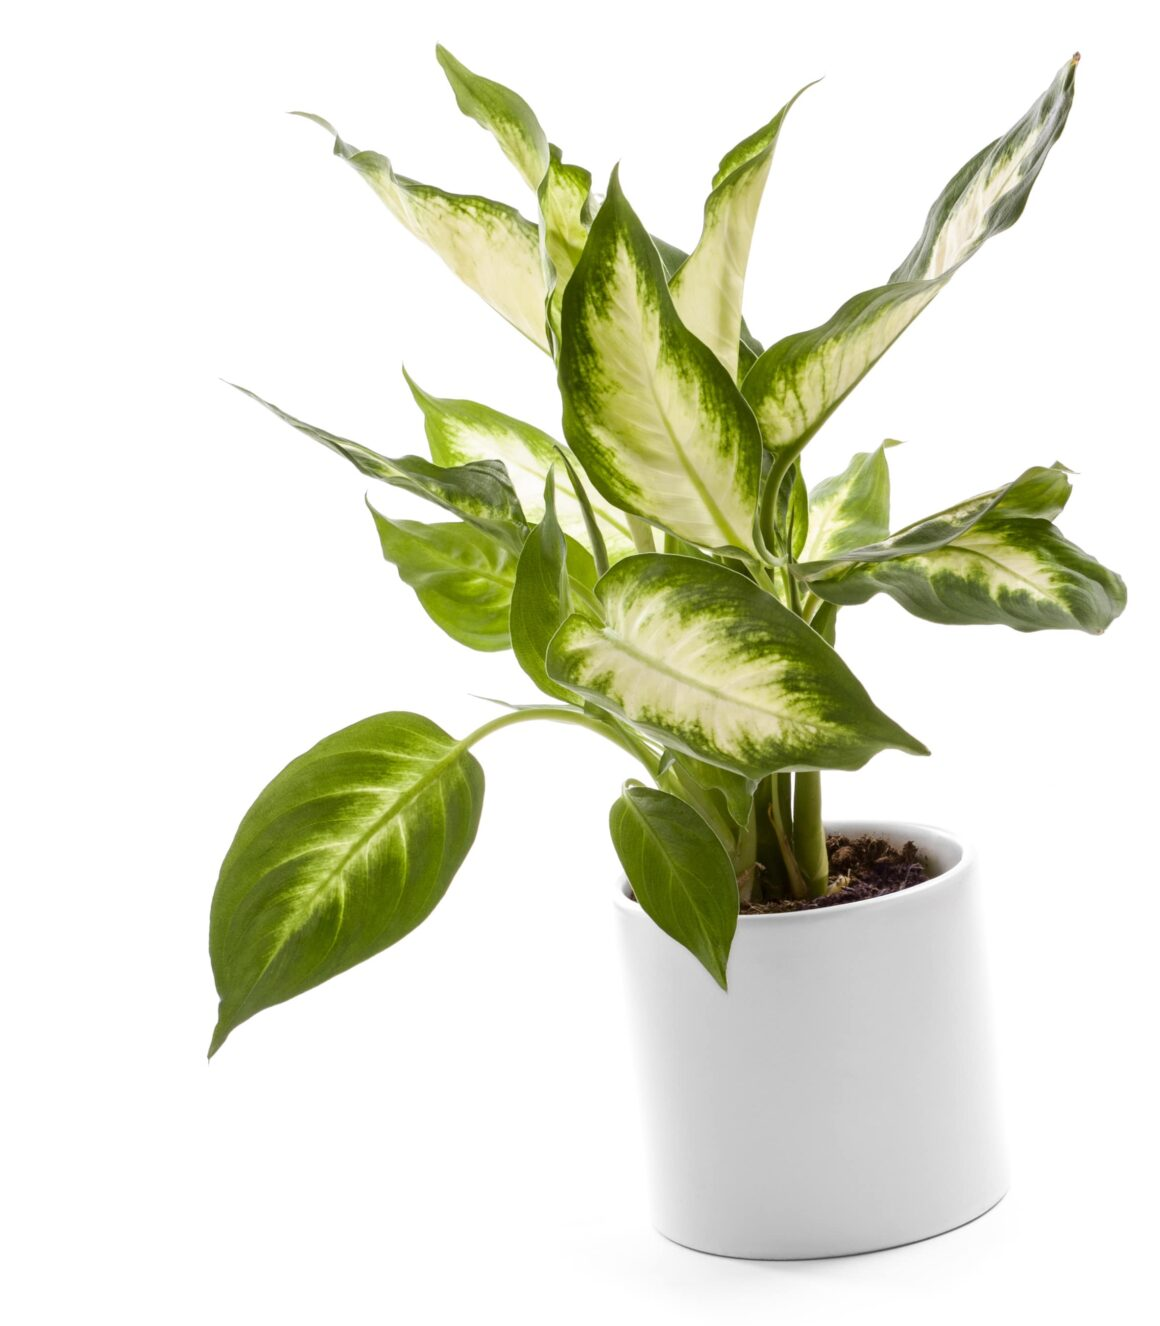 Dumb Cane Is An Indoor Tree Plant